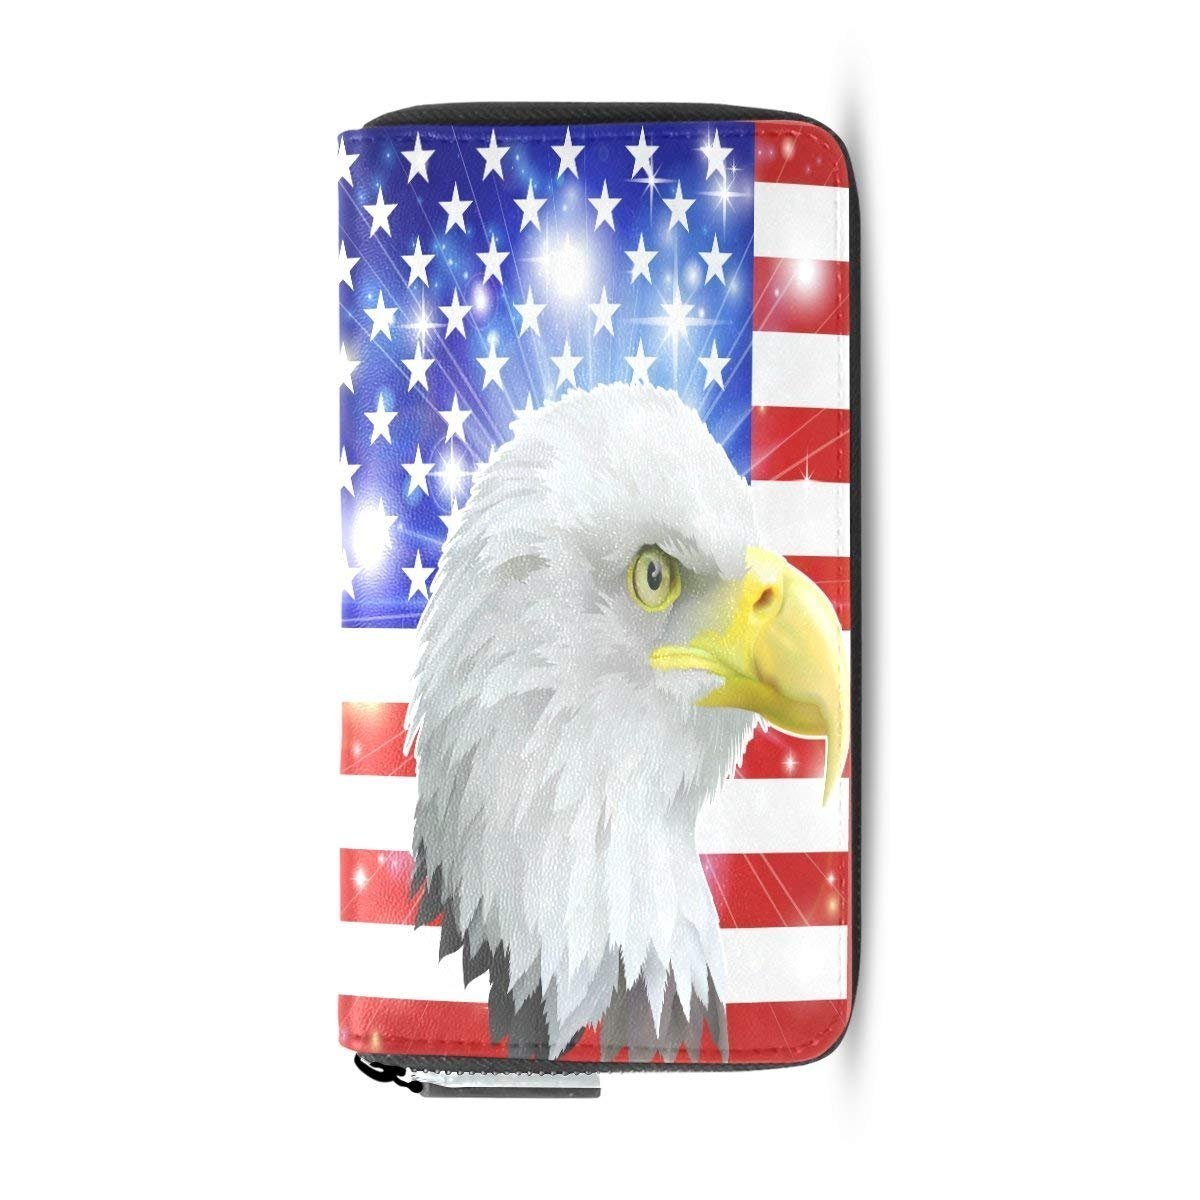 Womens Wallets Fashion Eagles American Usa Flag Card Case Holder Clutch Purse Handbag